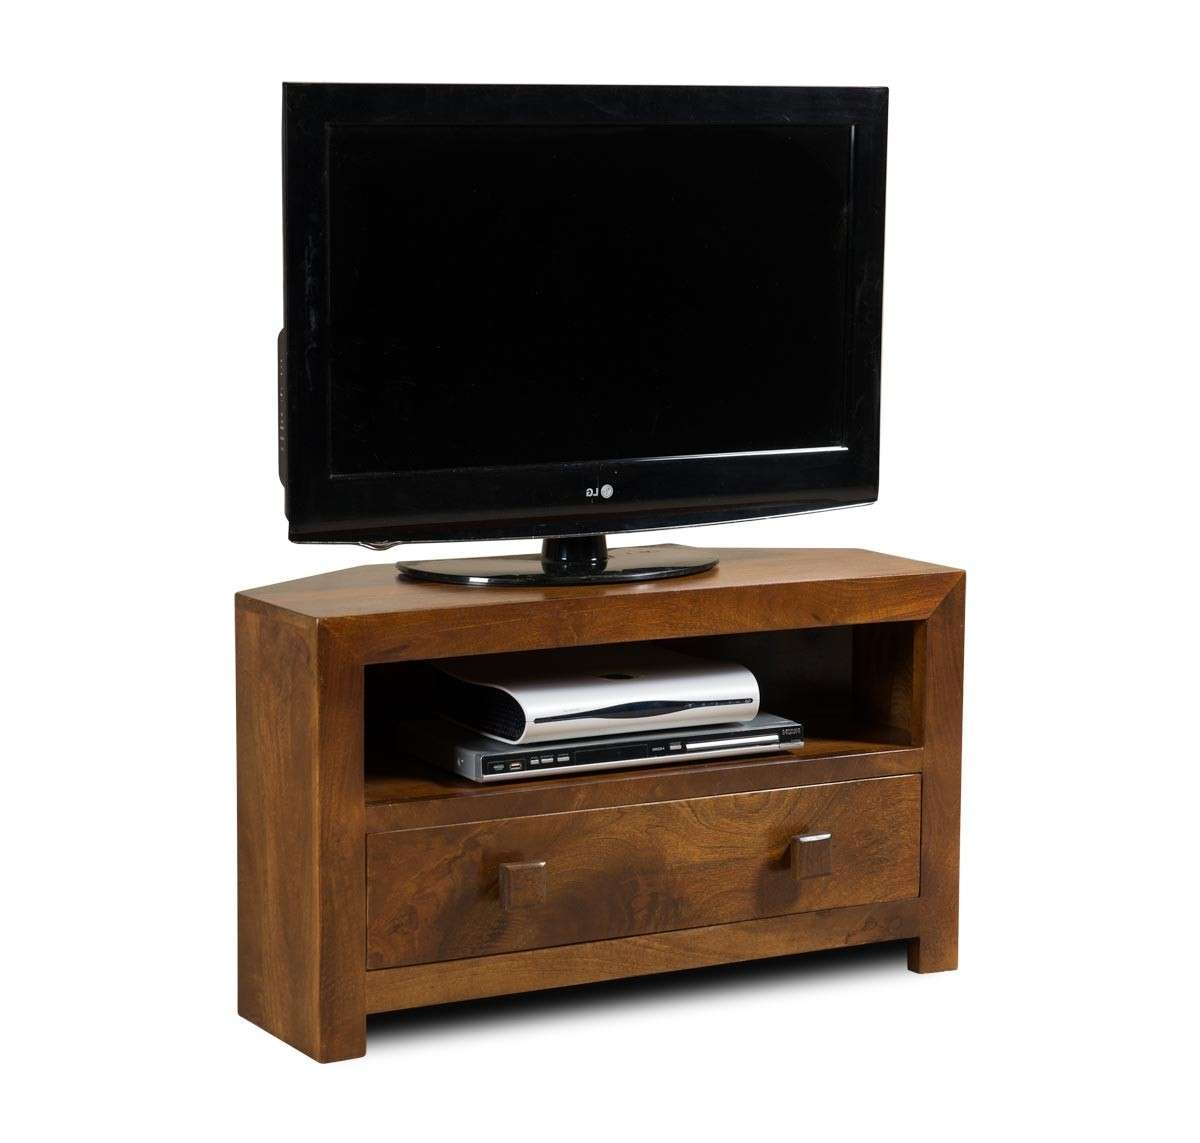 Wooden Corner Tv Stand With Fireplace Decofurnish Inspirations Throughout Dark Wood Corner Tv Stands (View 13 of 15)